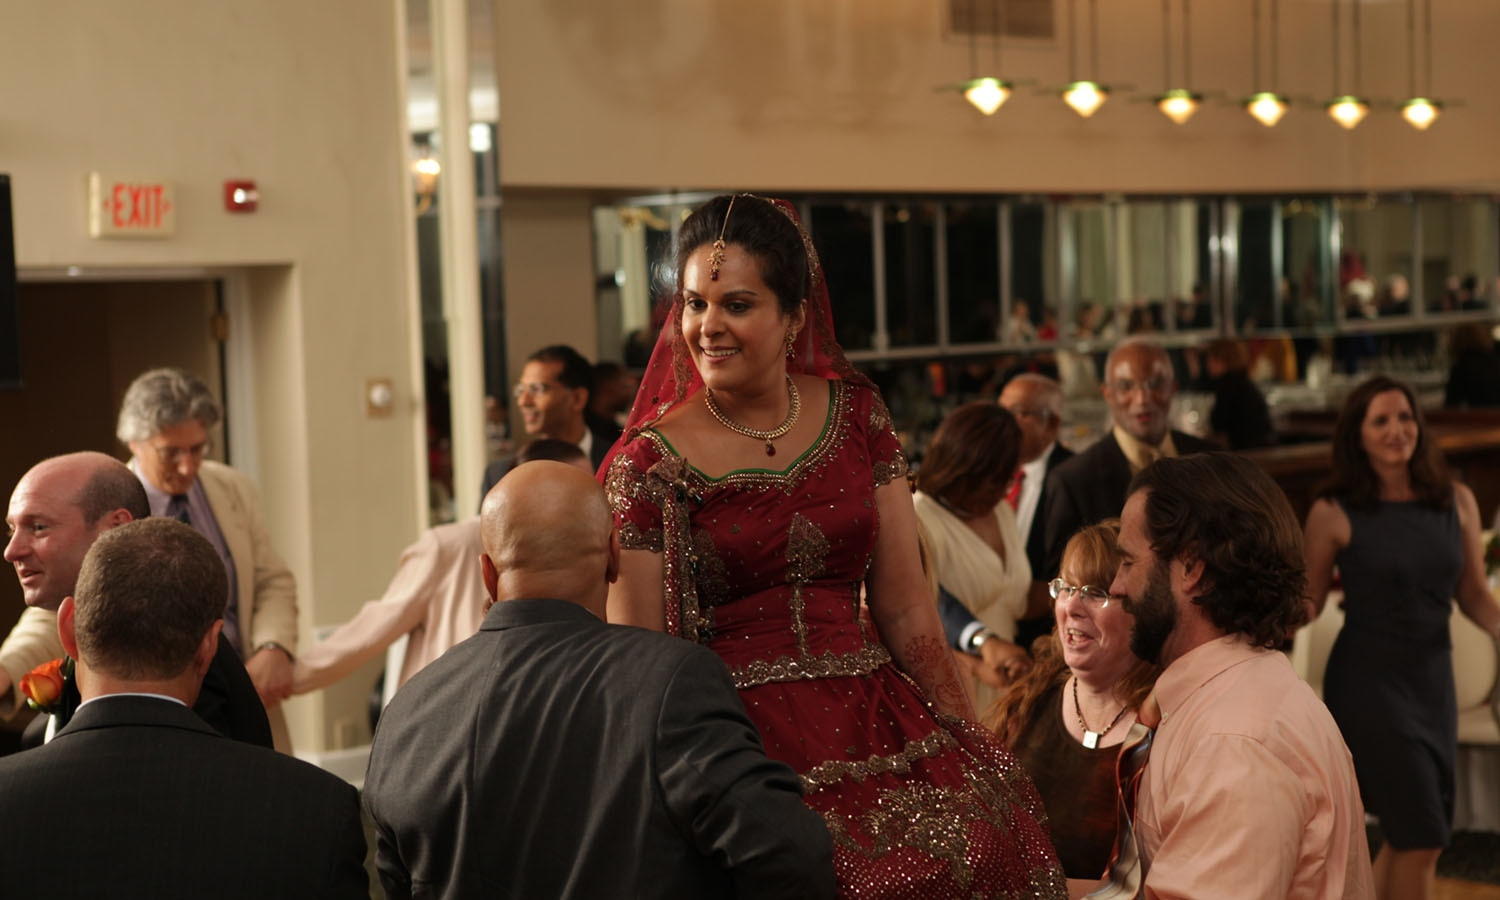 Amara Chaudhry Kravitz is lifted on a chair, as the guests dance to the 'Hava Nagila'. — Photo courtesy Amara Chaudhry Kravitz